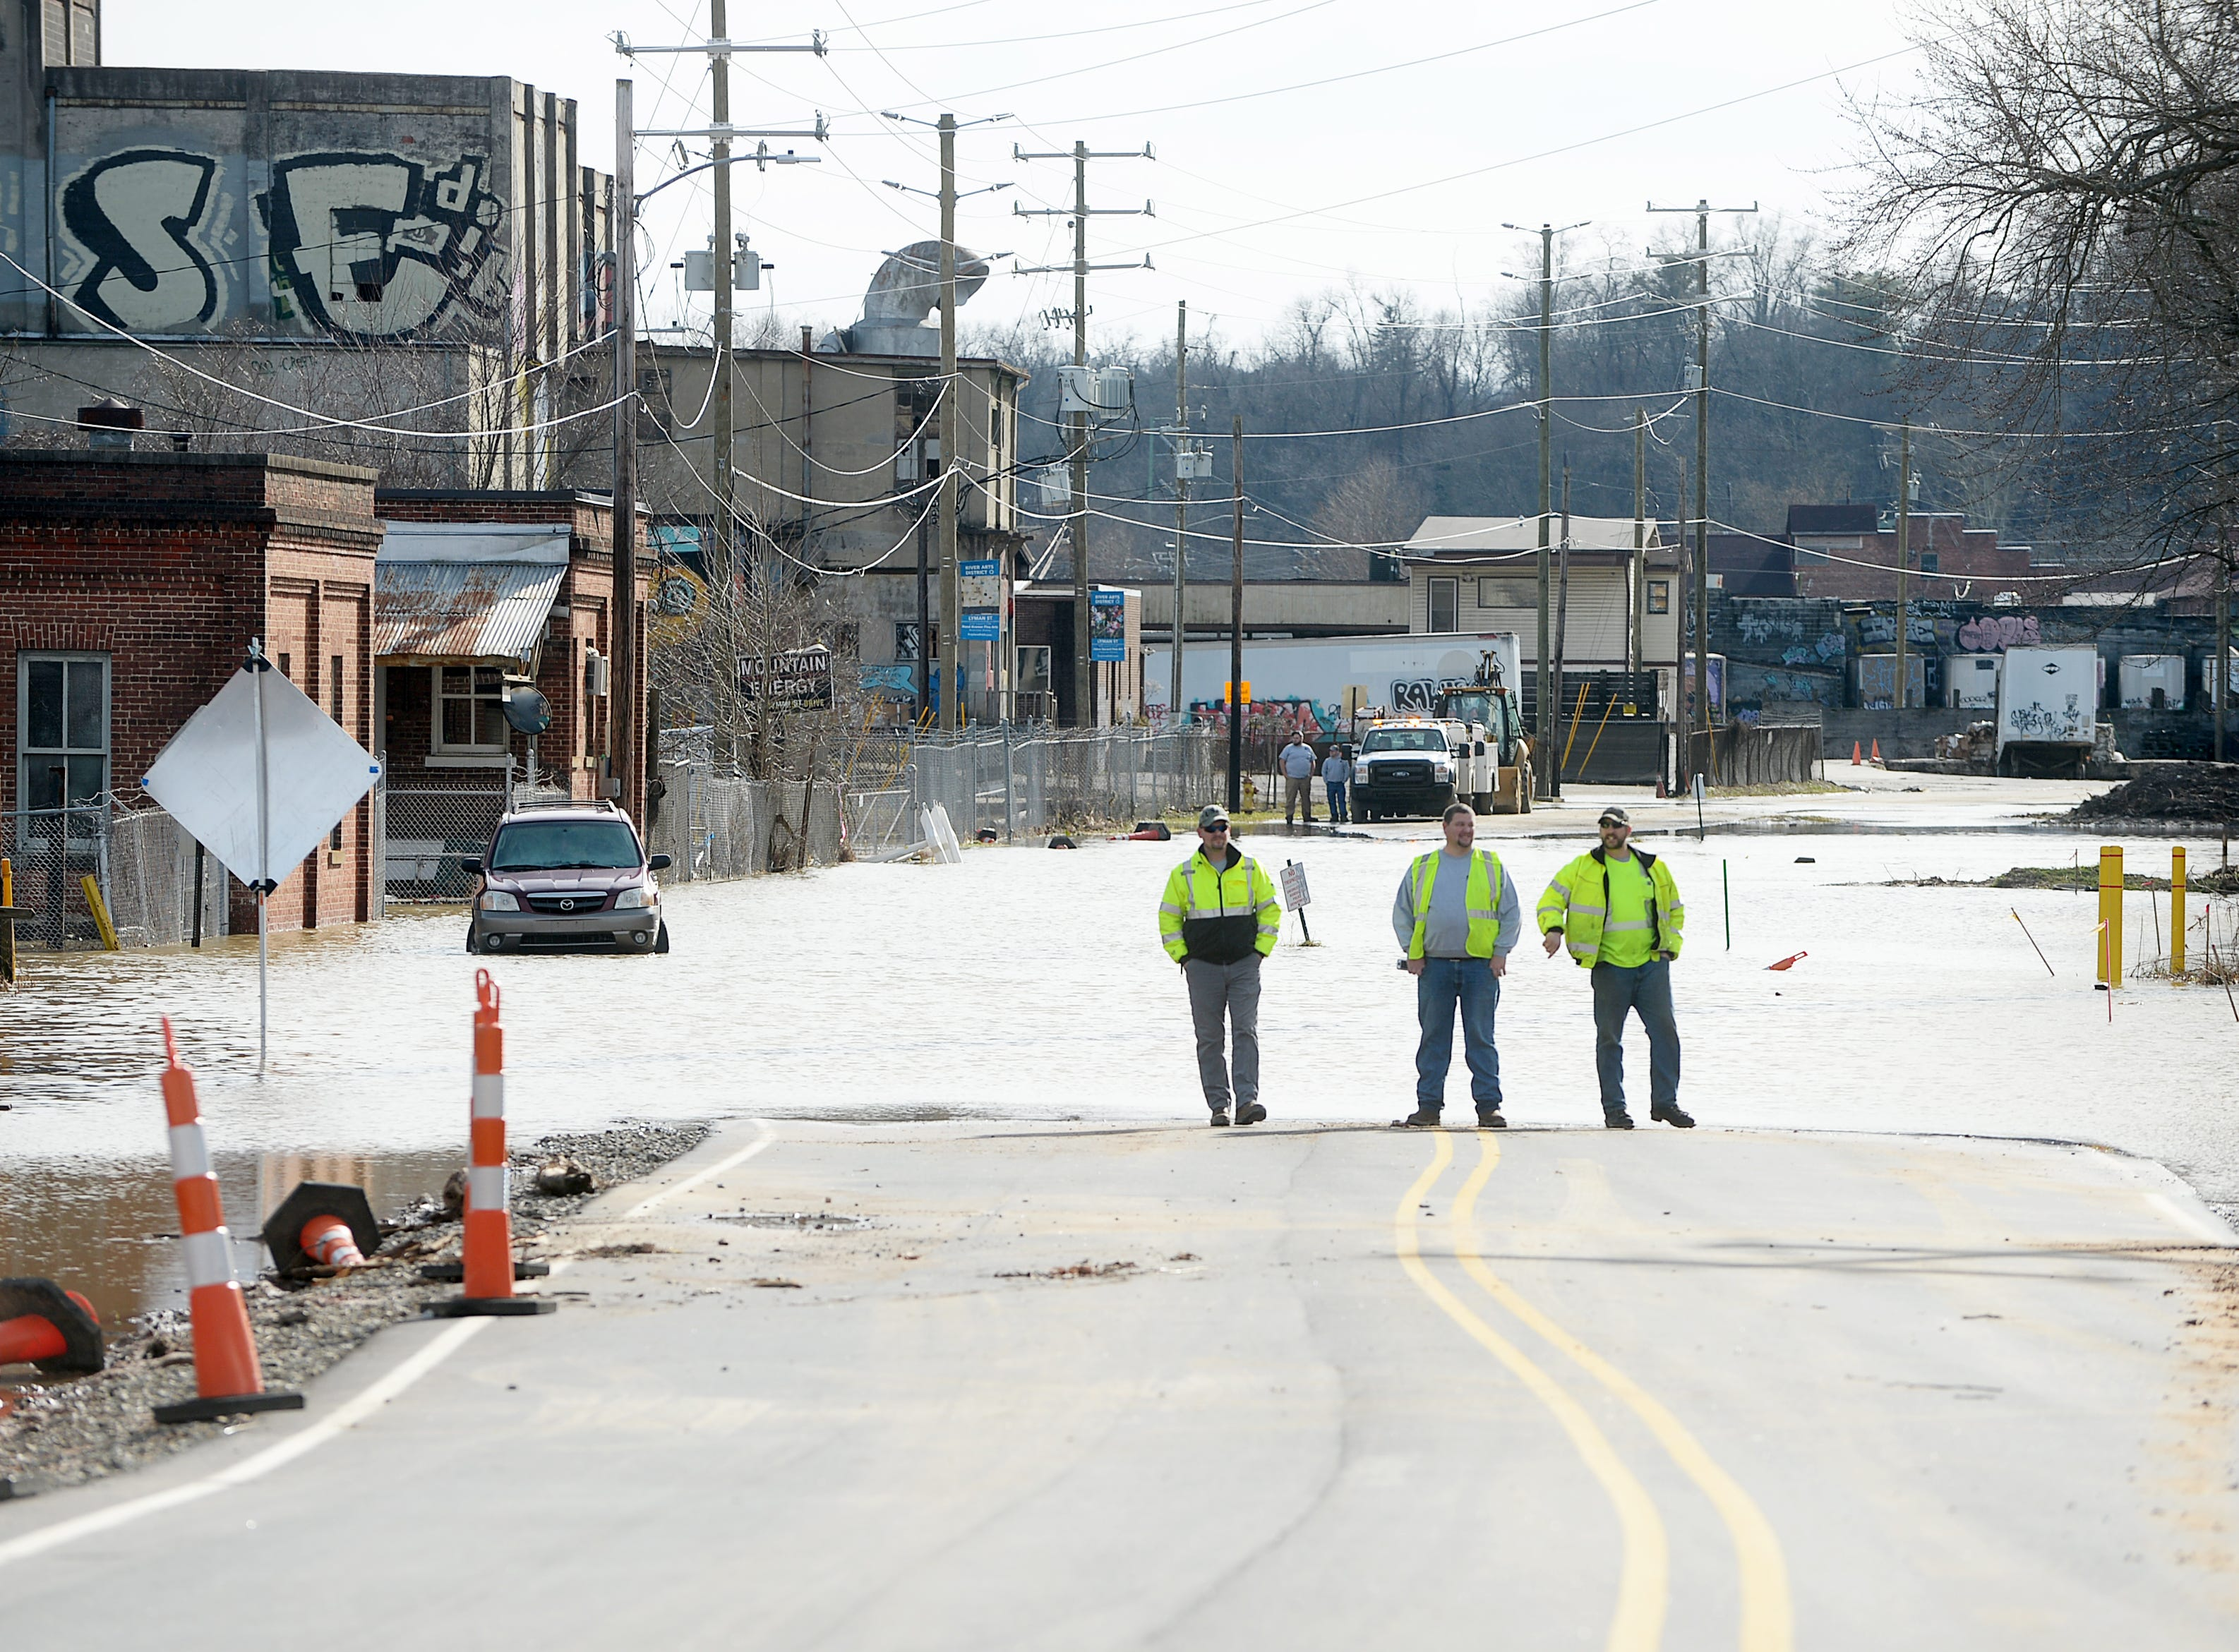 Asheville City employees from left, John White, Jeremy Hyatt and Kyle Hoehn survey the scene as the French Broad River overflows onto Lyman Street in Asheville Dec. 29, 2018.